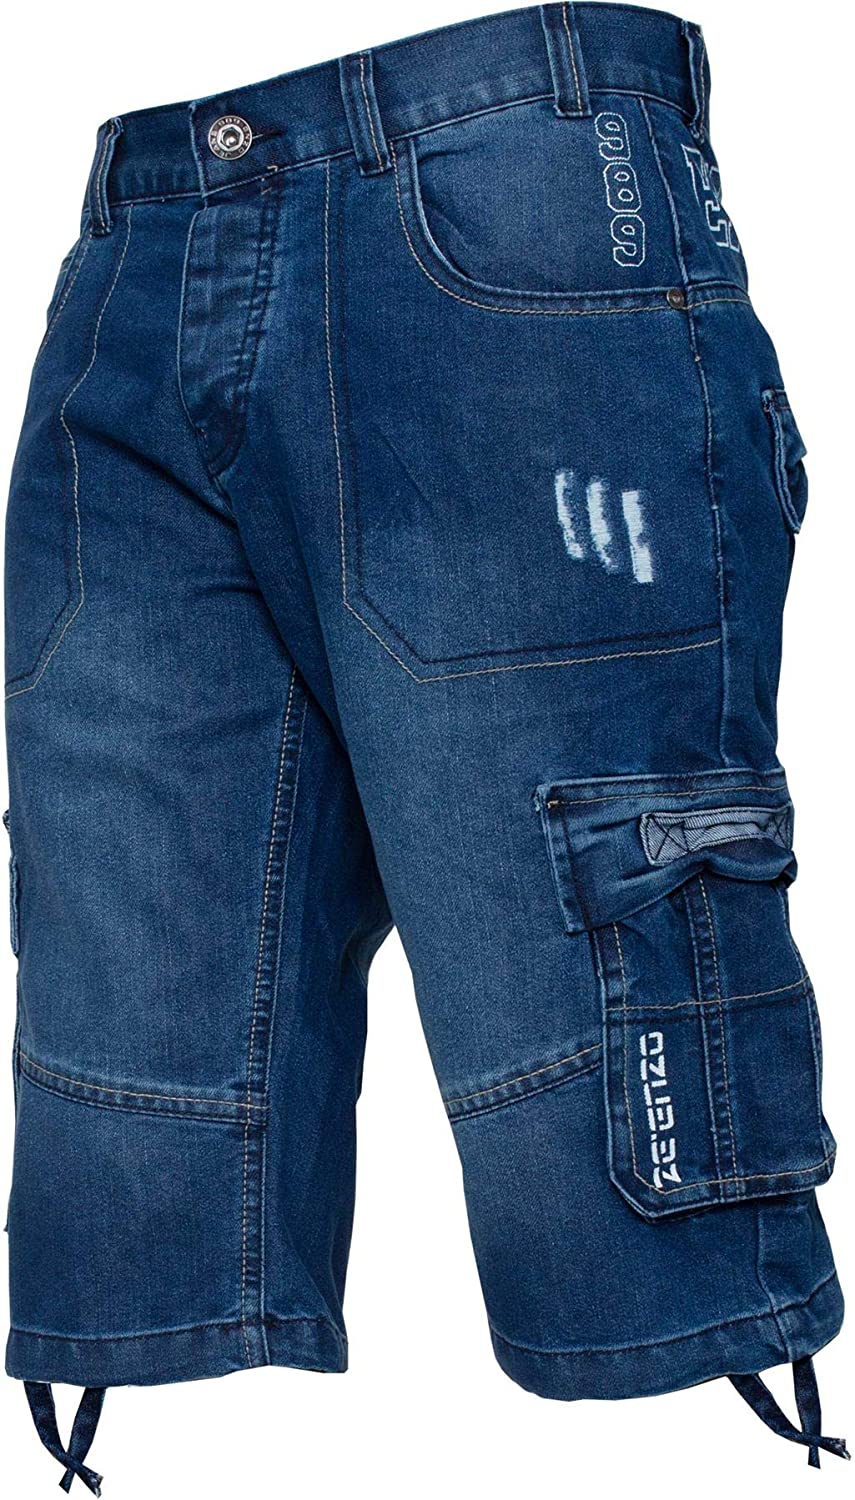 Enzo Jeans Men's Classic Relaxed Fit Cargo Short